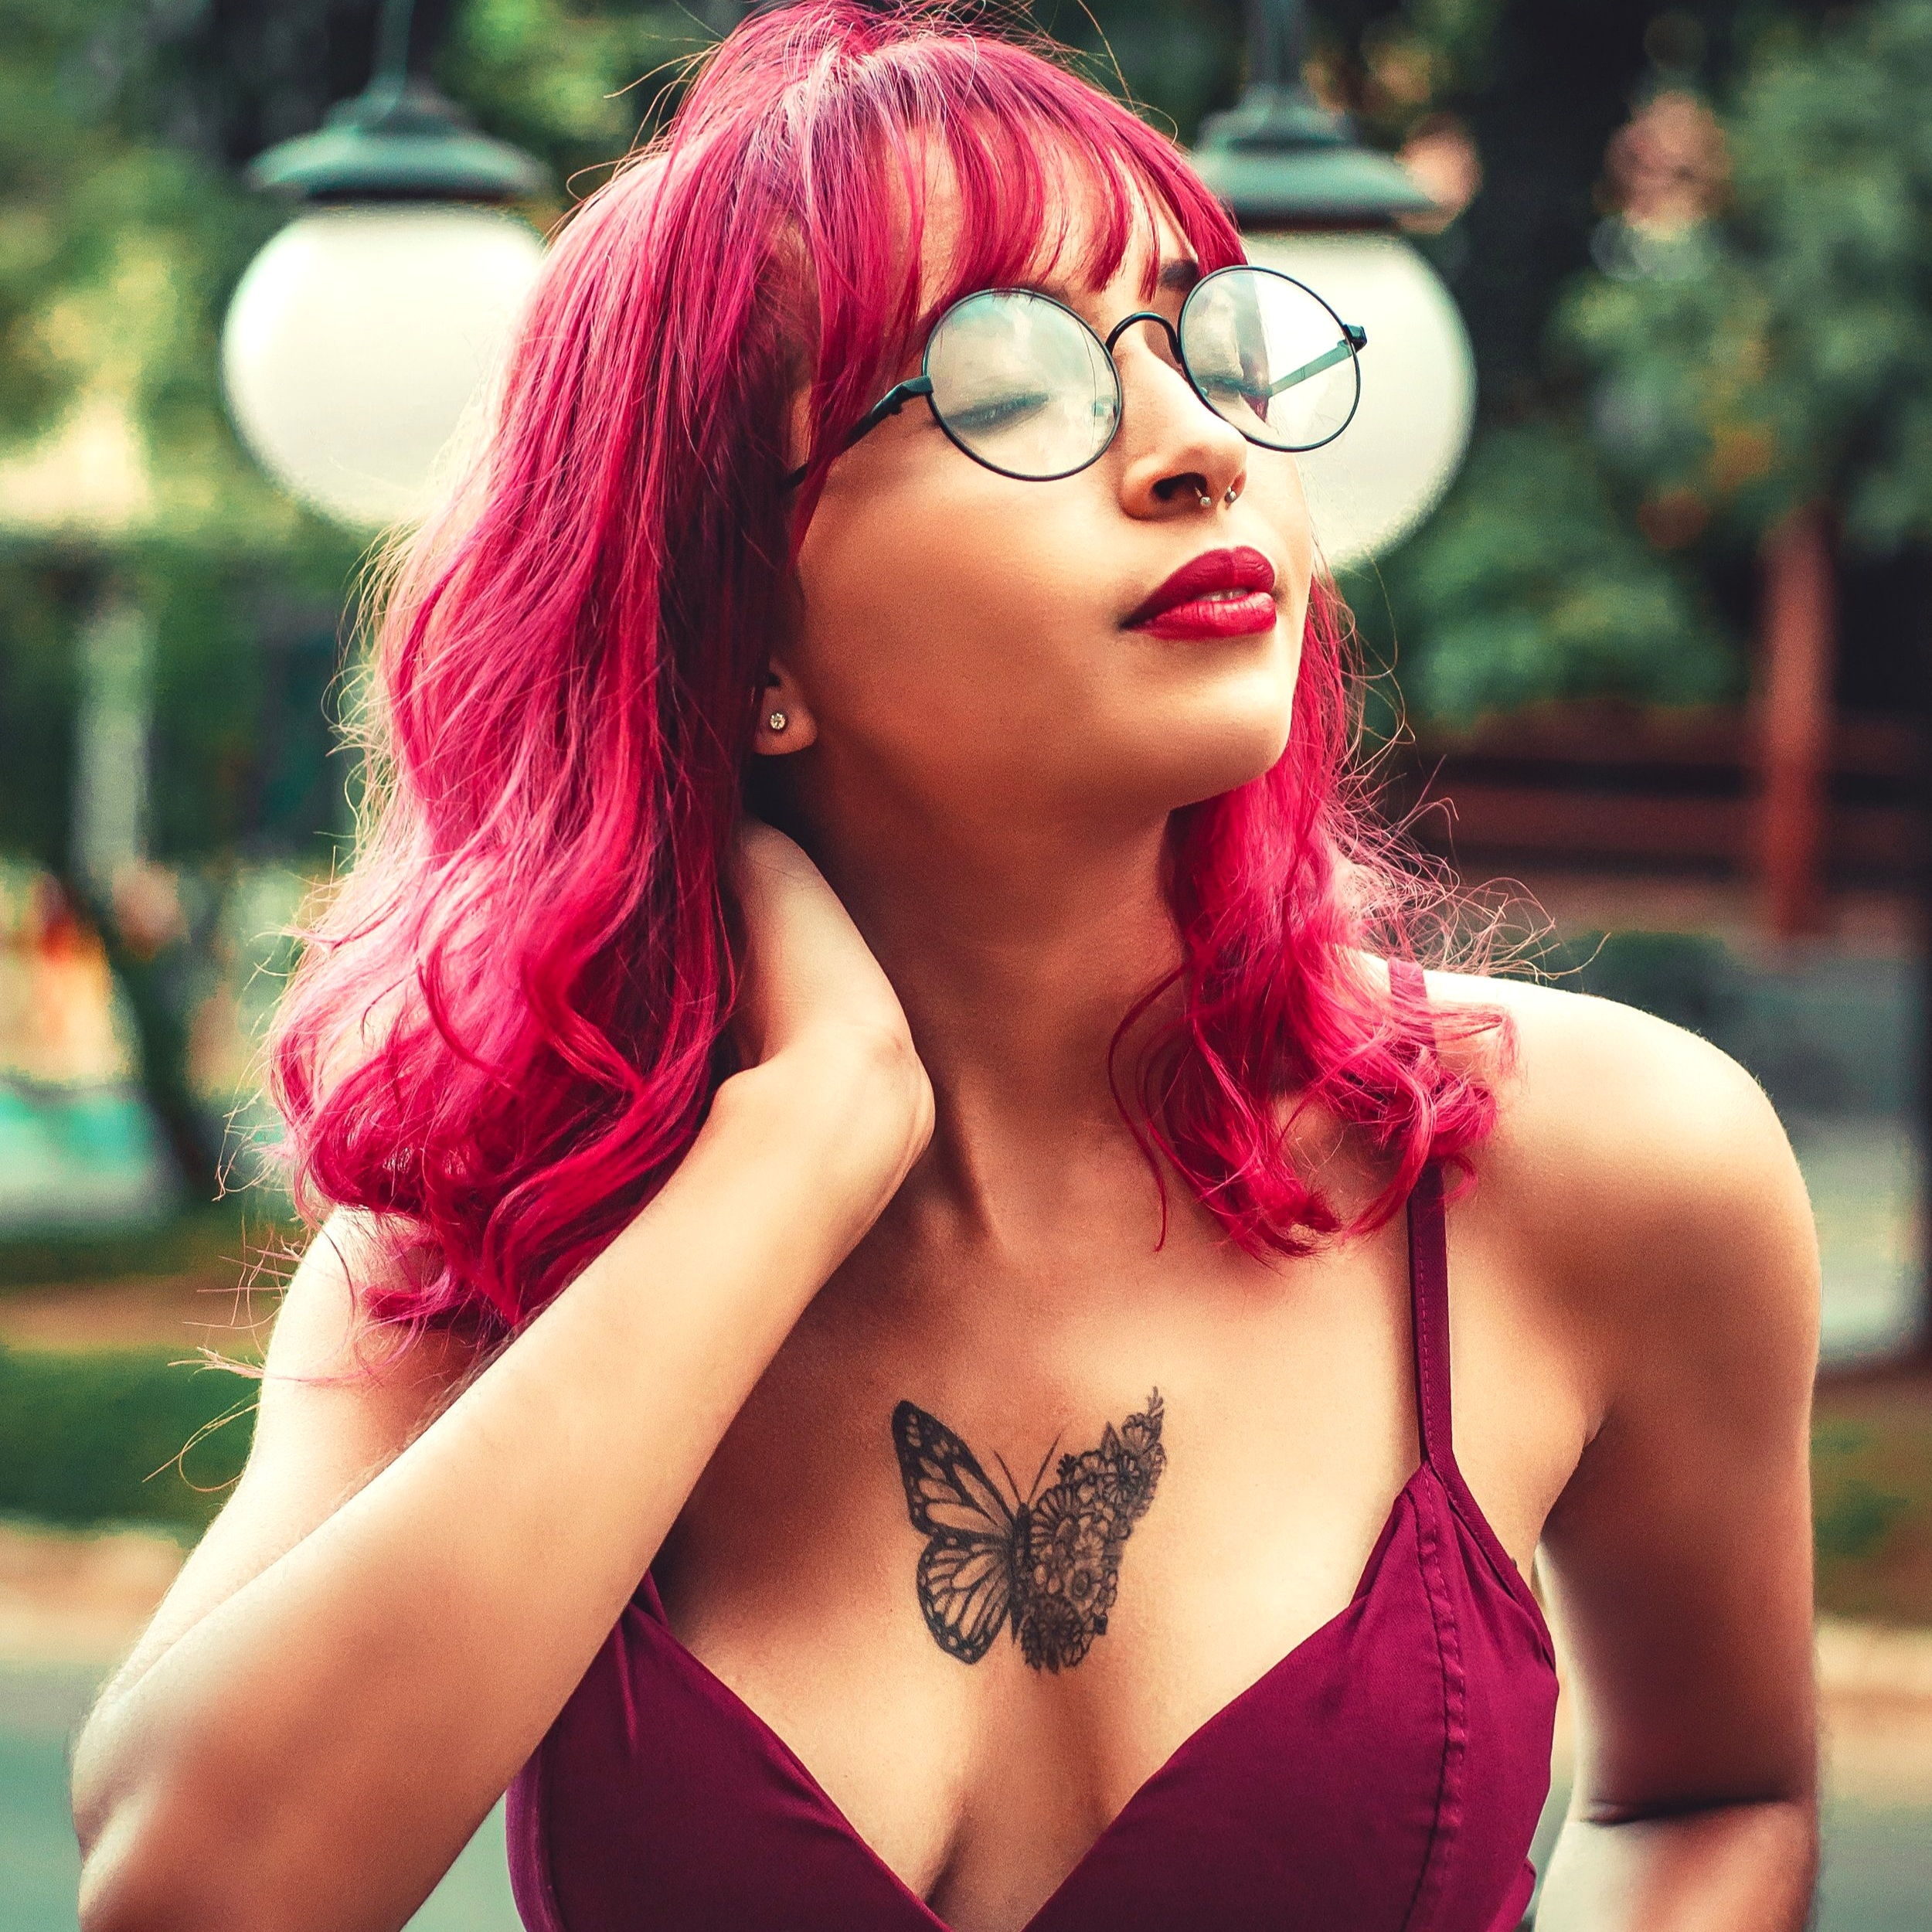 tattoo_piercing_red_hair_Inlinephotography-Photo+by+lleo_+rr+from+Pexels.jpg